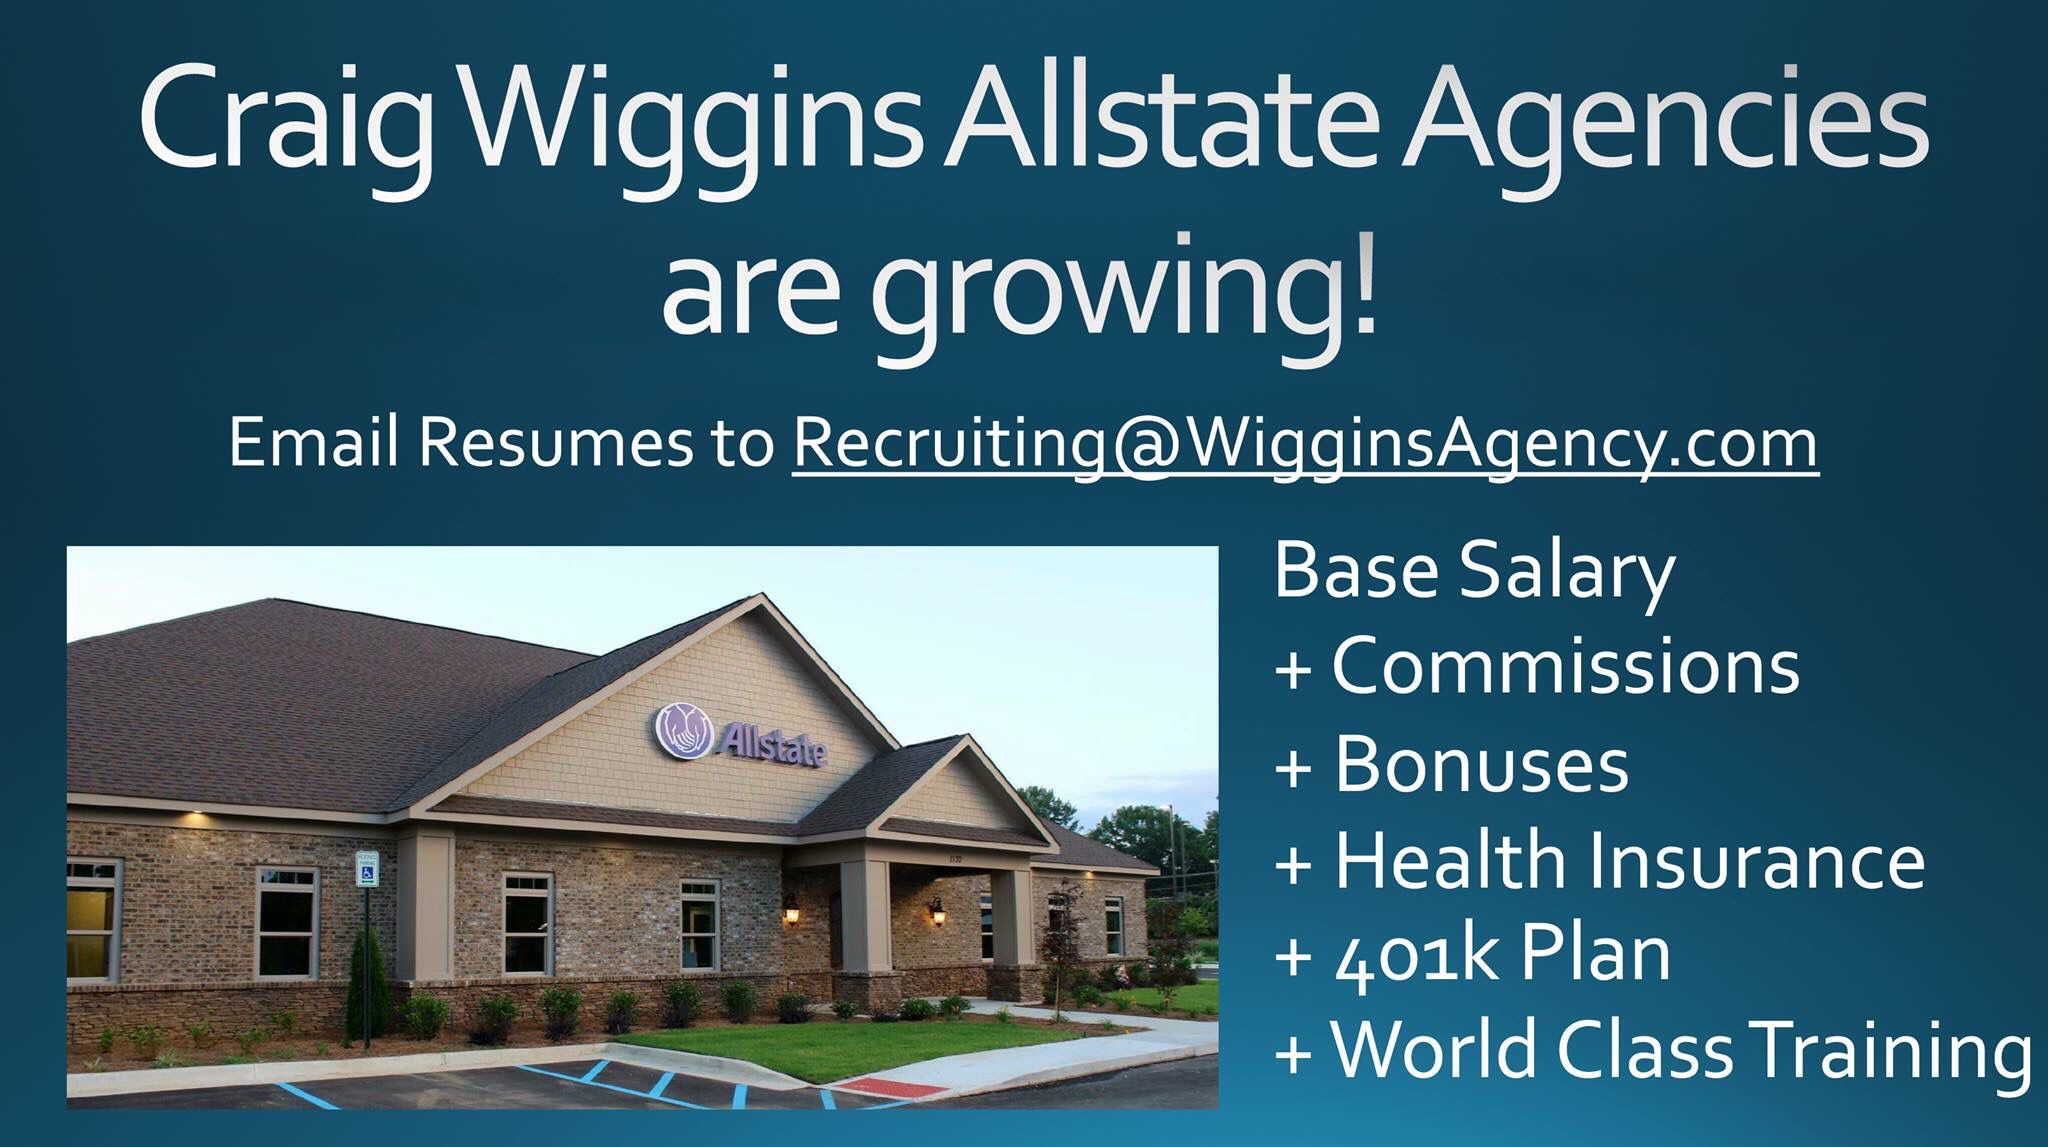 Craig Wiggins Allstate Agencies In Alabama And Georgia Seeking